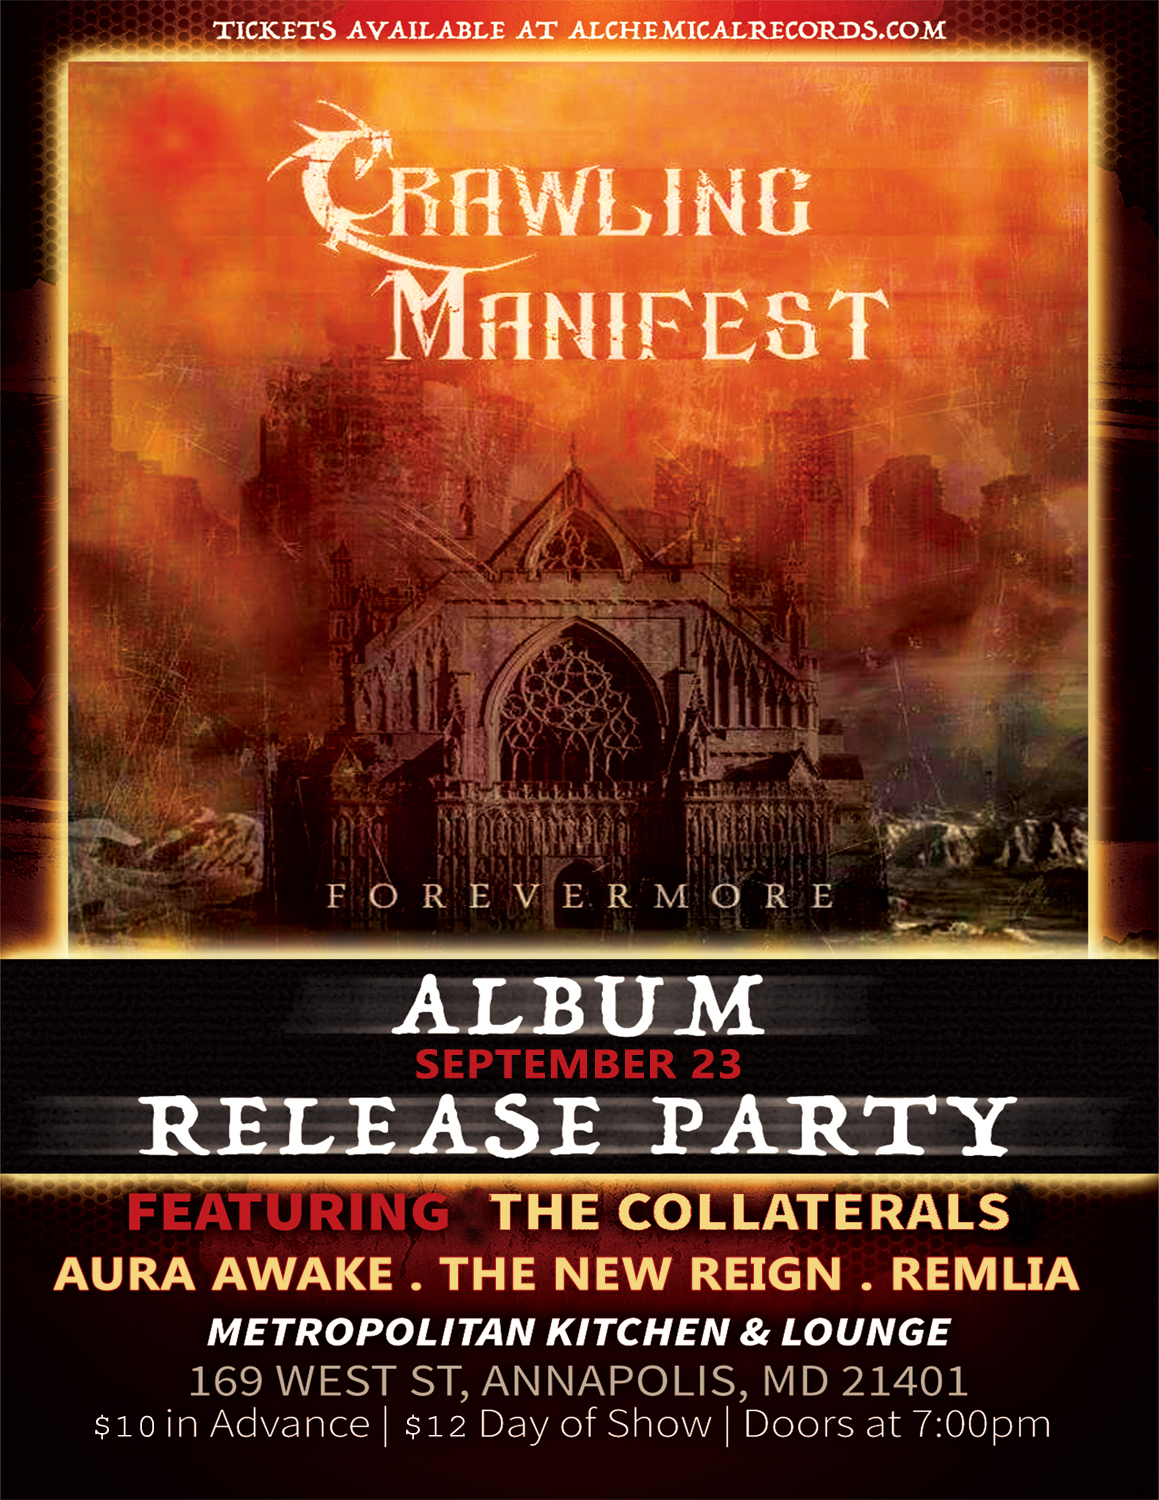 Crawling Manifest Album CD Release Party with The Collaterals, Aura Awake, The New Reign, and Remlia at Metropolitan Kitchen and Lounge in Annapolis, MD on September 23 2016.